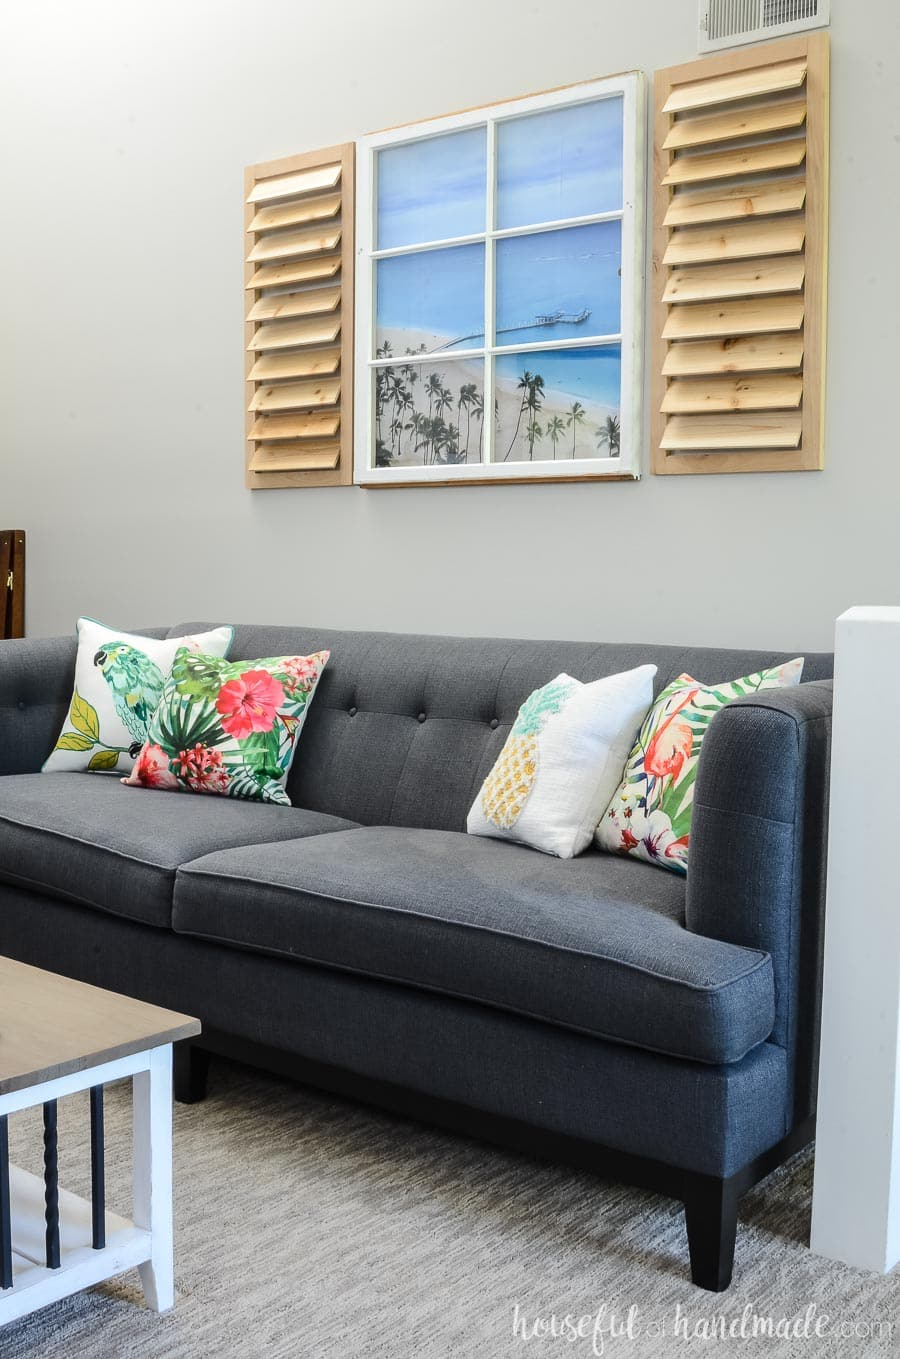 I love this idea for creating a tropical living room. Print a photo from a vacation and place behind an old window. Hang with decorative shutters. Housefulofhandmade.com